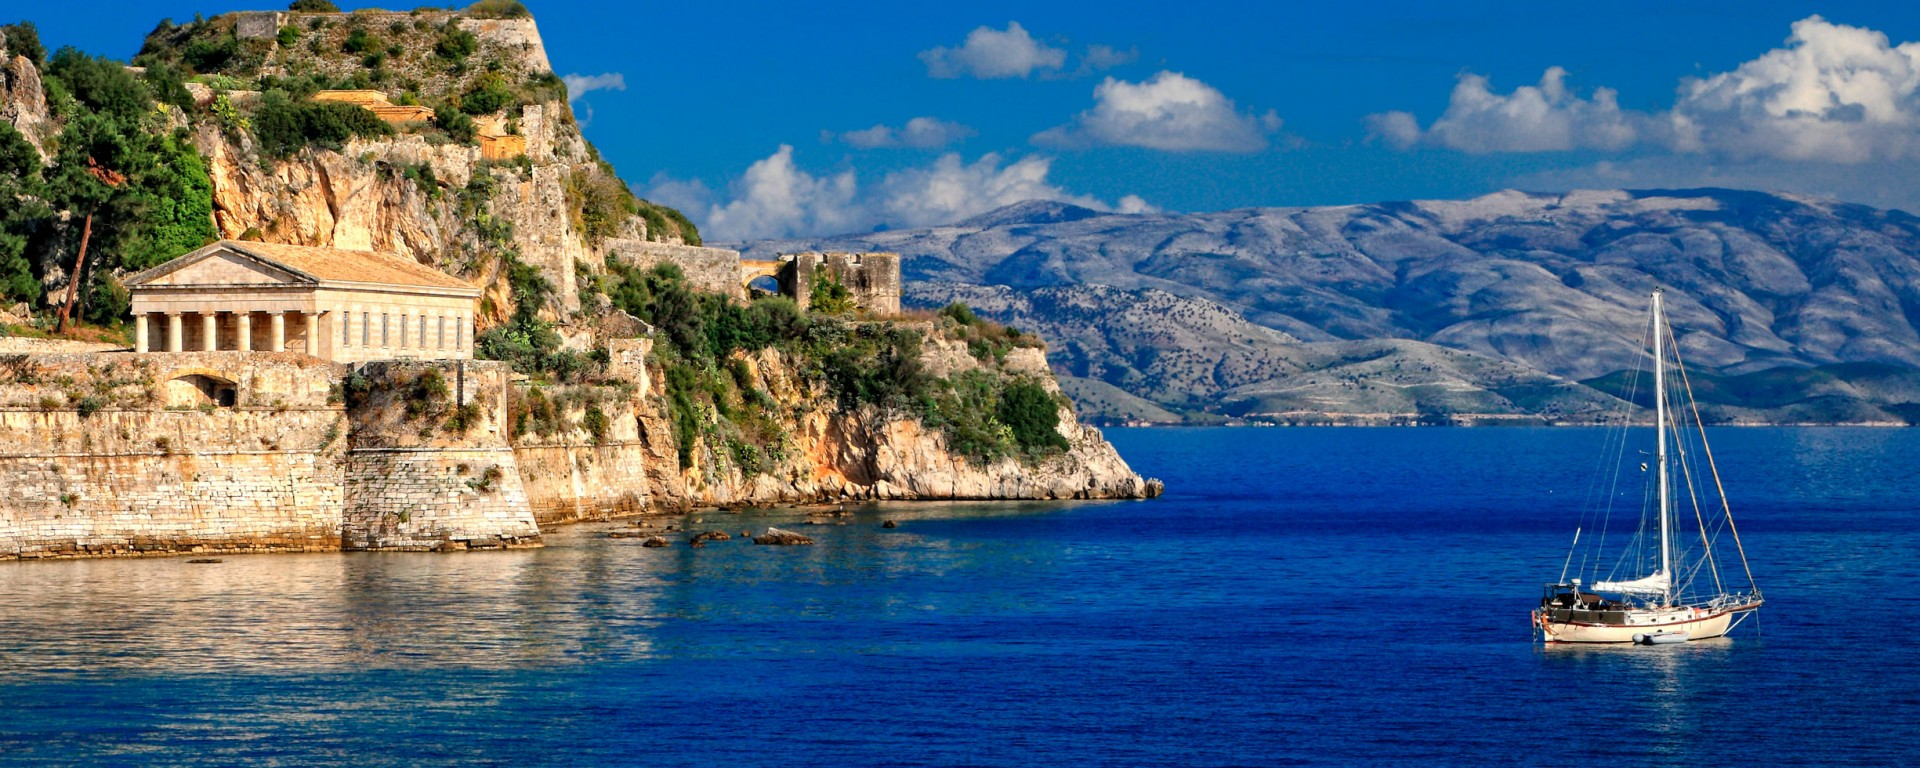 Top 5 Destinations For Ionian Island Hopping